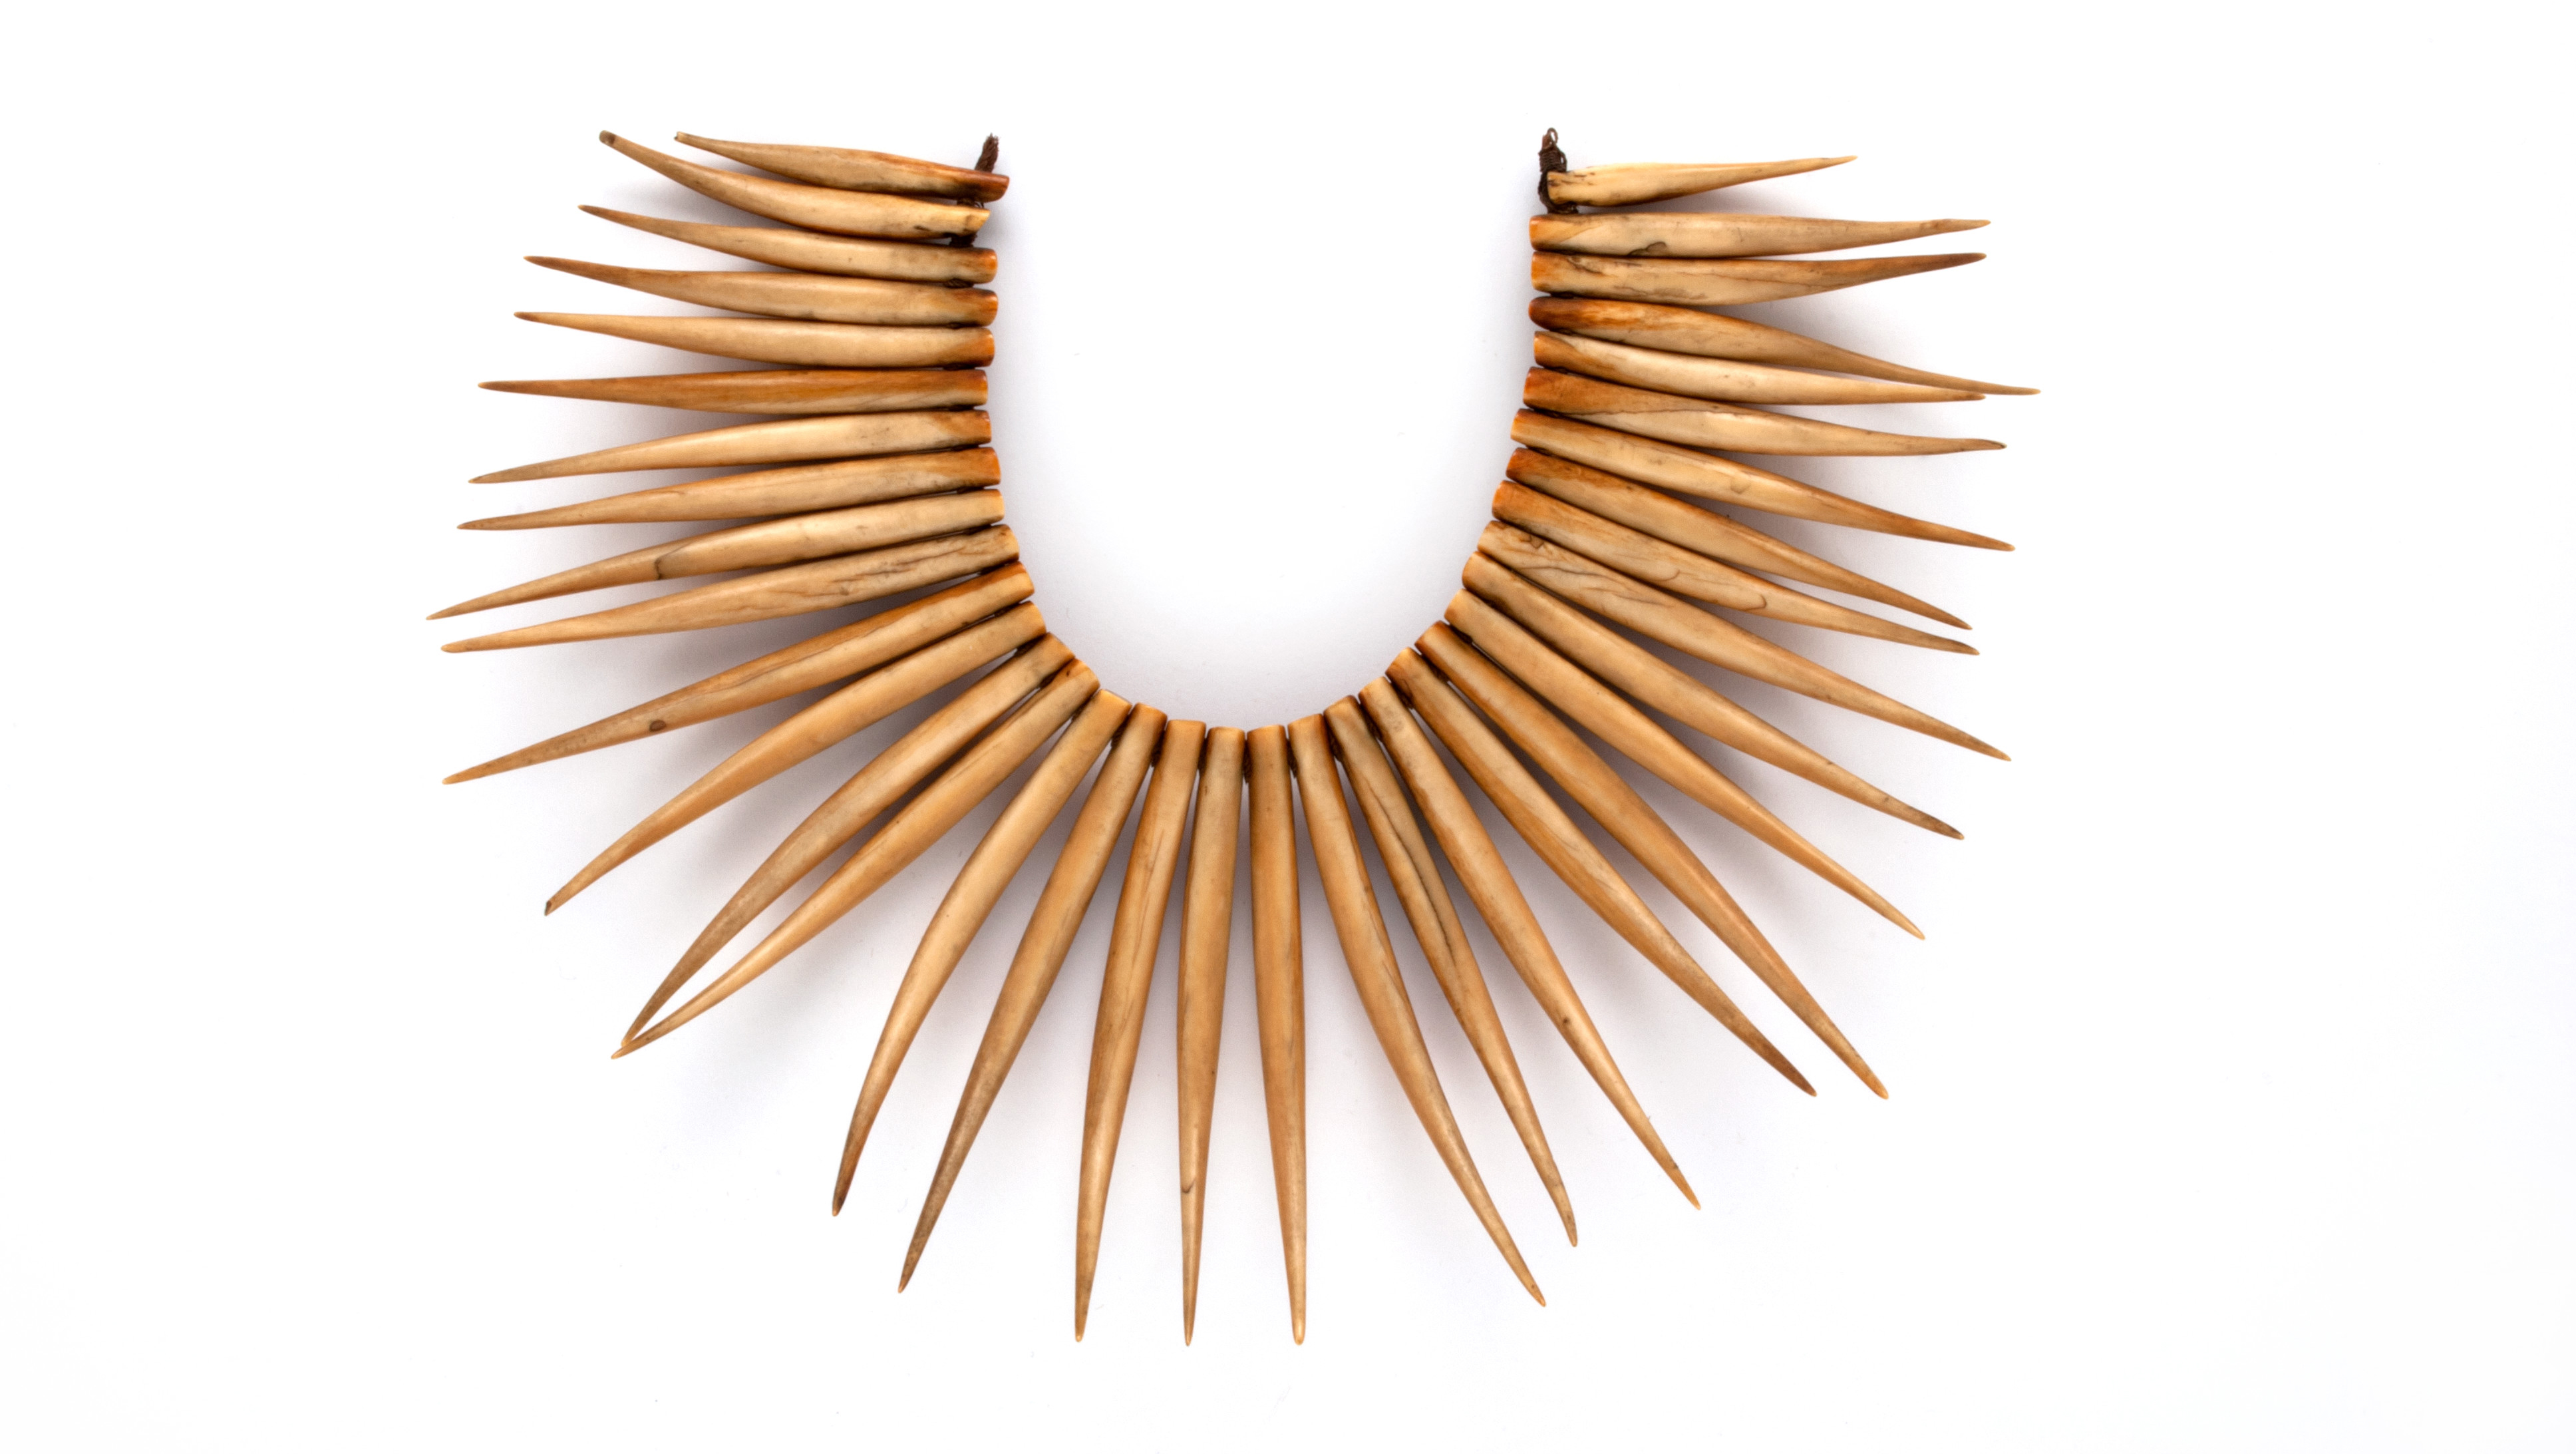 Necklace (wasekaseka/waseisei), Fiji, early to mid-19th century, Museum of Archaeology and Anthropology, University of Cambridge: 1931.203, collected by Alfred Maudslay 1875–80, photo reproduced by permission of Museum of Archaeology and Anthropology, University of Cambridge